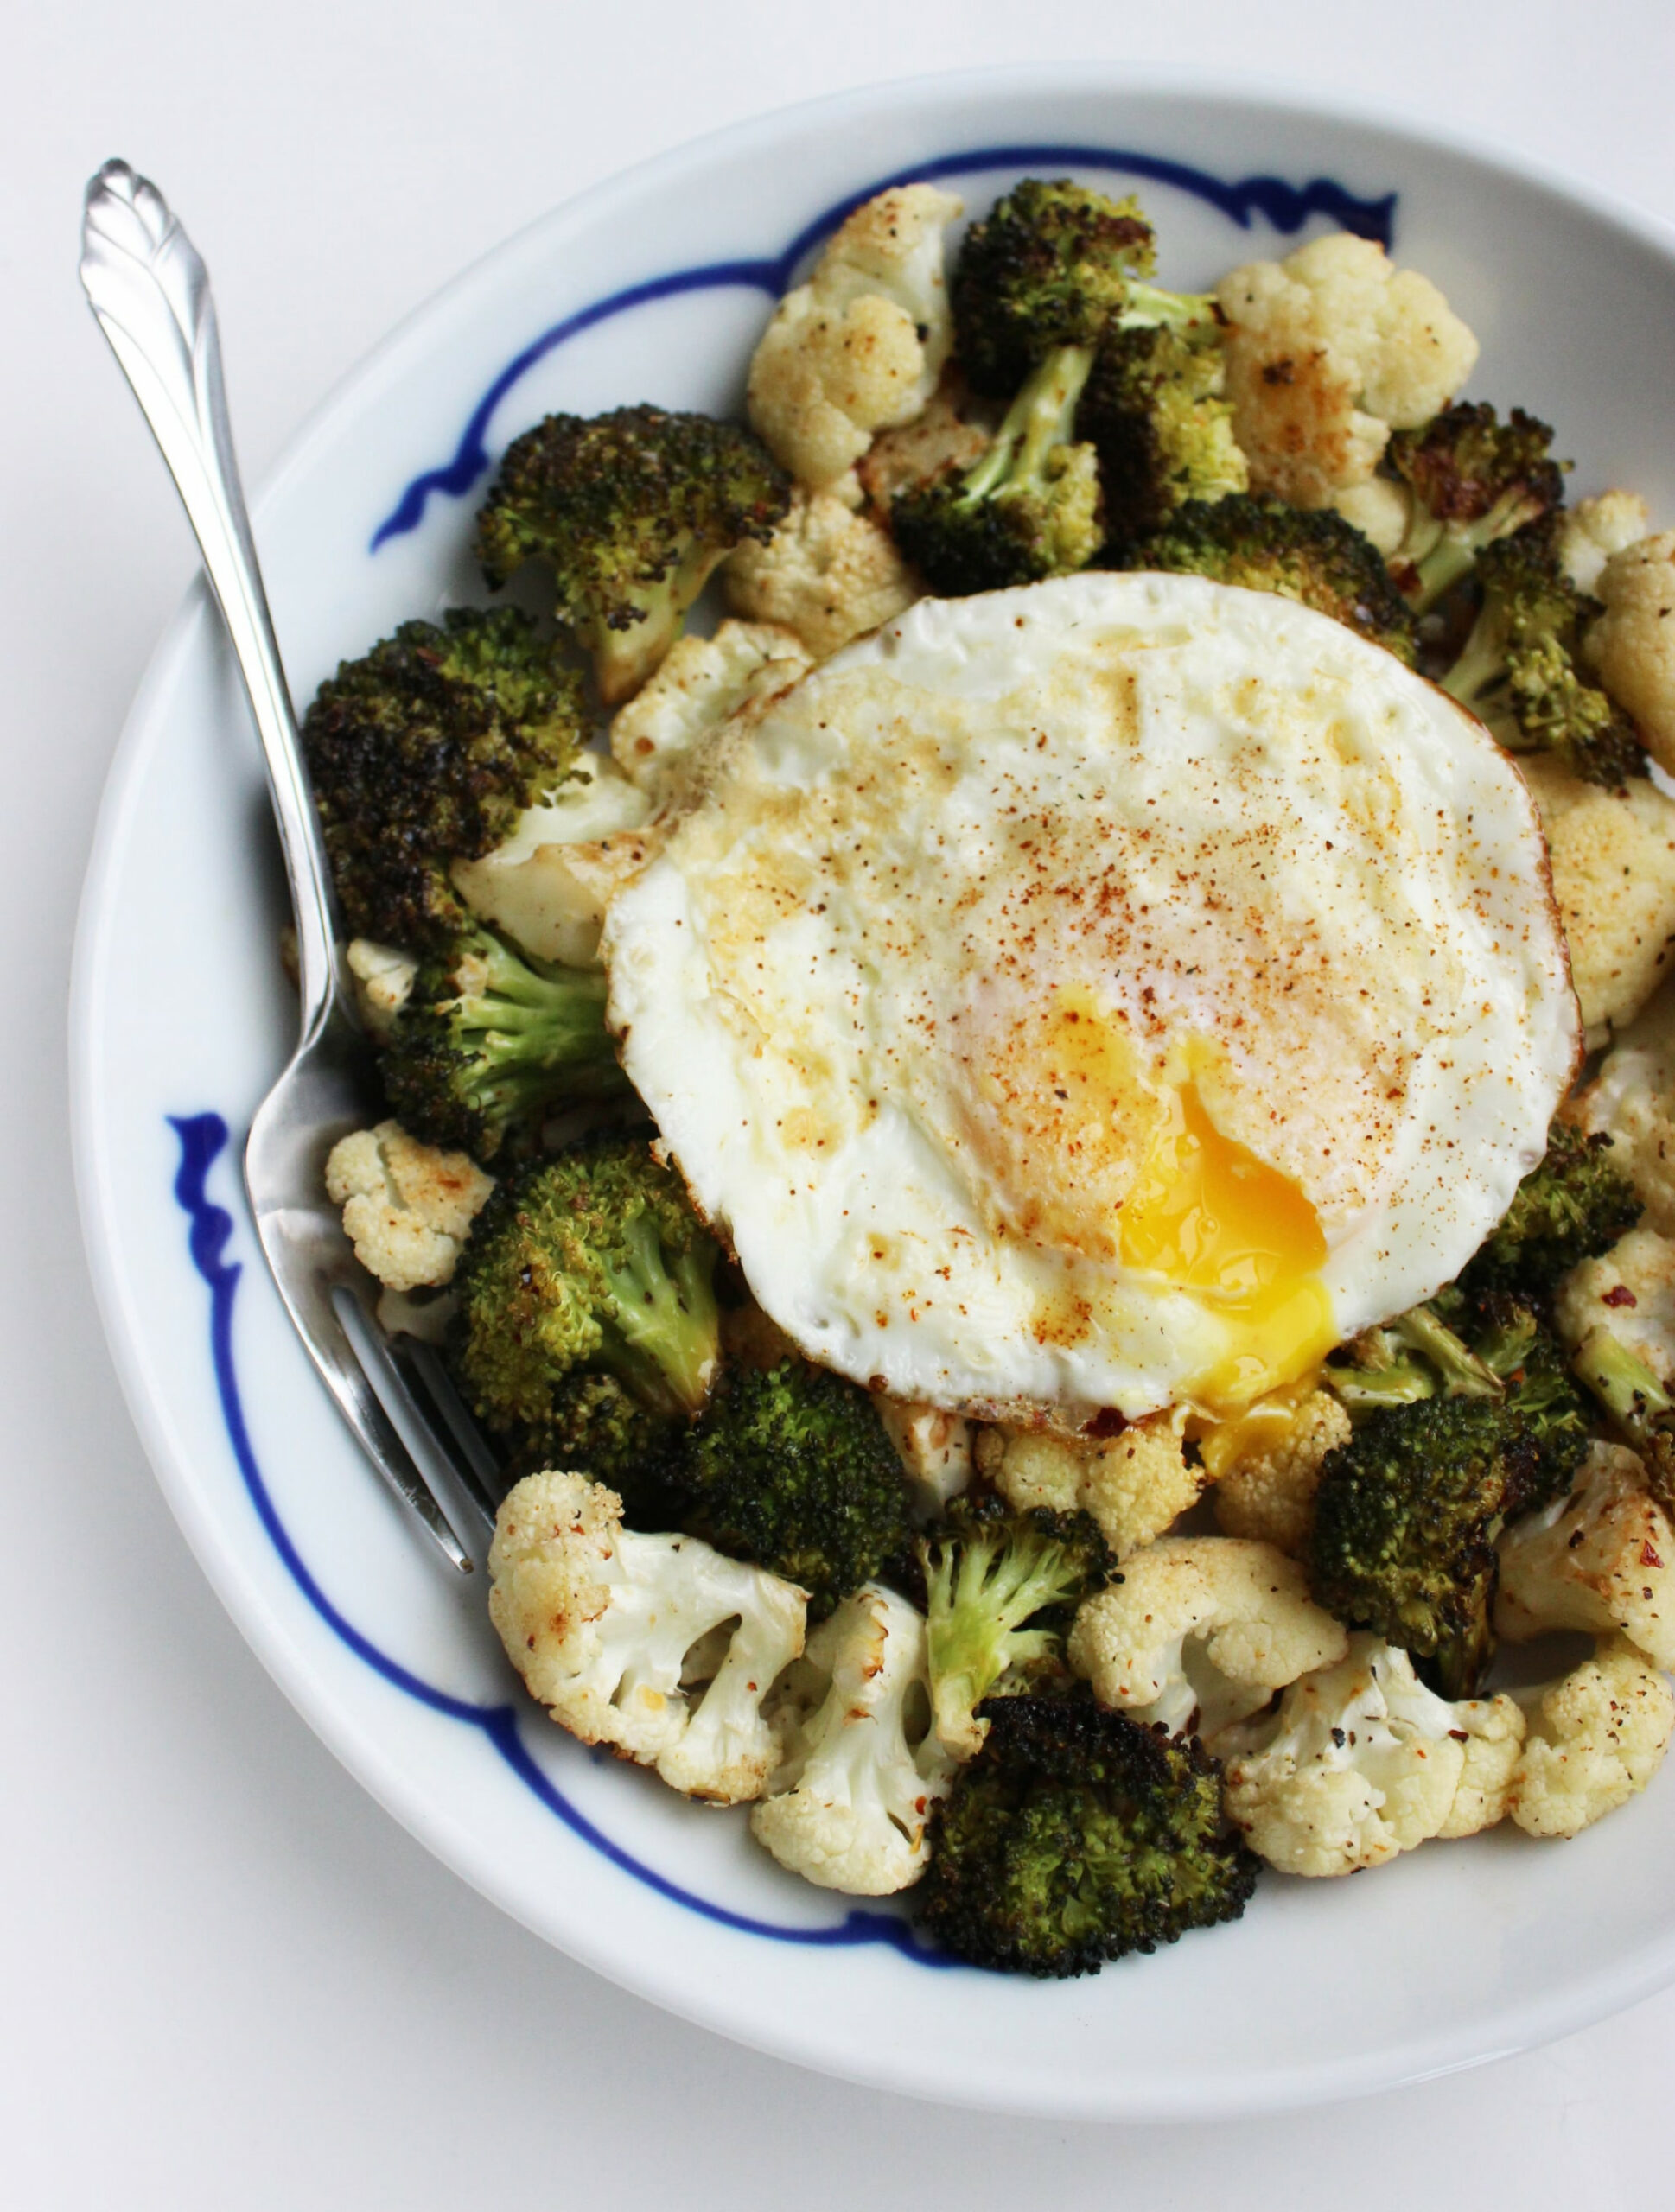 The Breakfast For Dinner Recipe That's The Perfect Post Workout Meal - Recipes Dinner Eggs